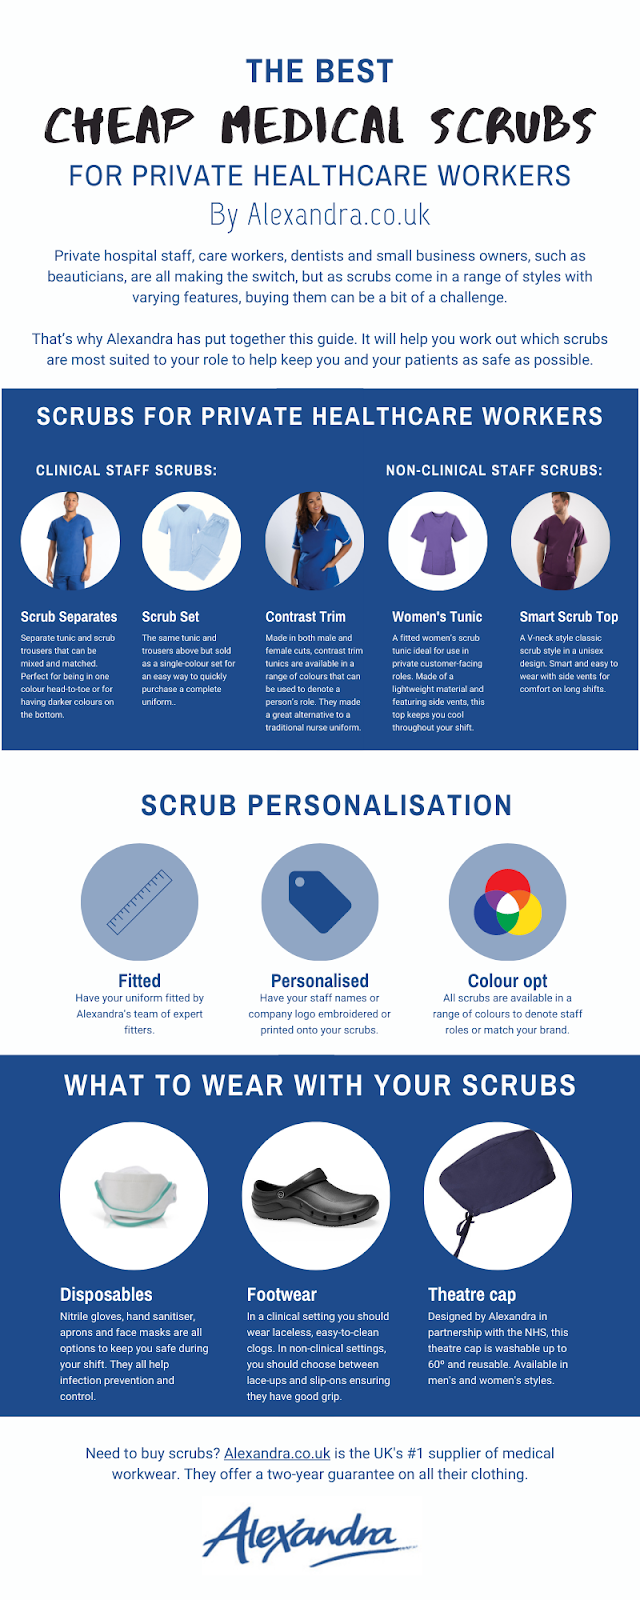 An infographic guide to cheap medical scrubs